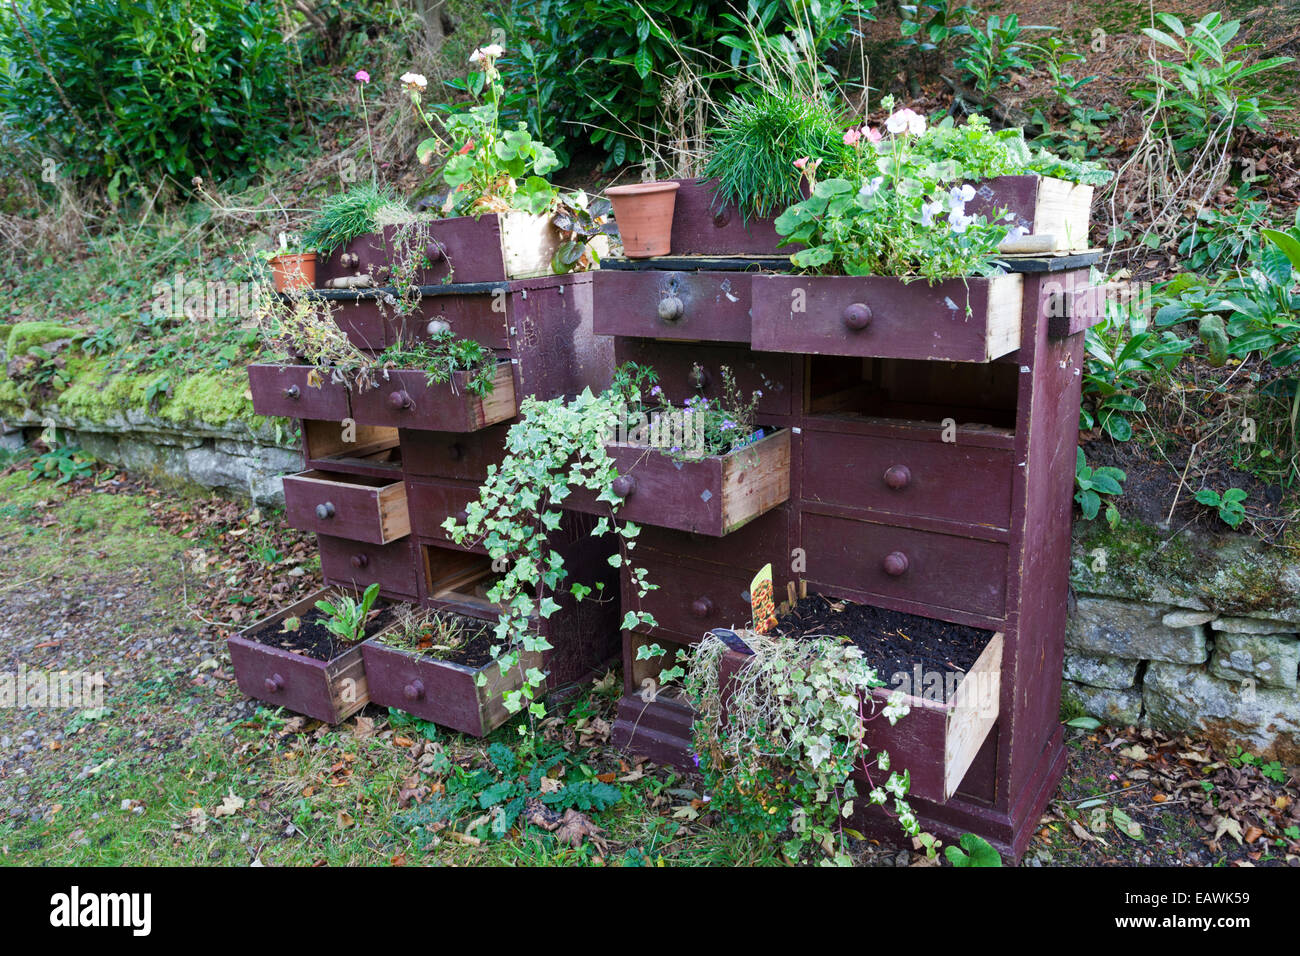 Creative use of an old chest of drawers for planting flowers at Garden Station, Langley, Northumberland UK - Stock Image